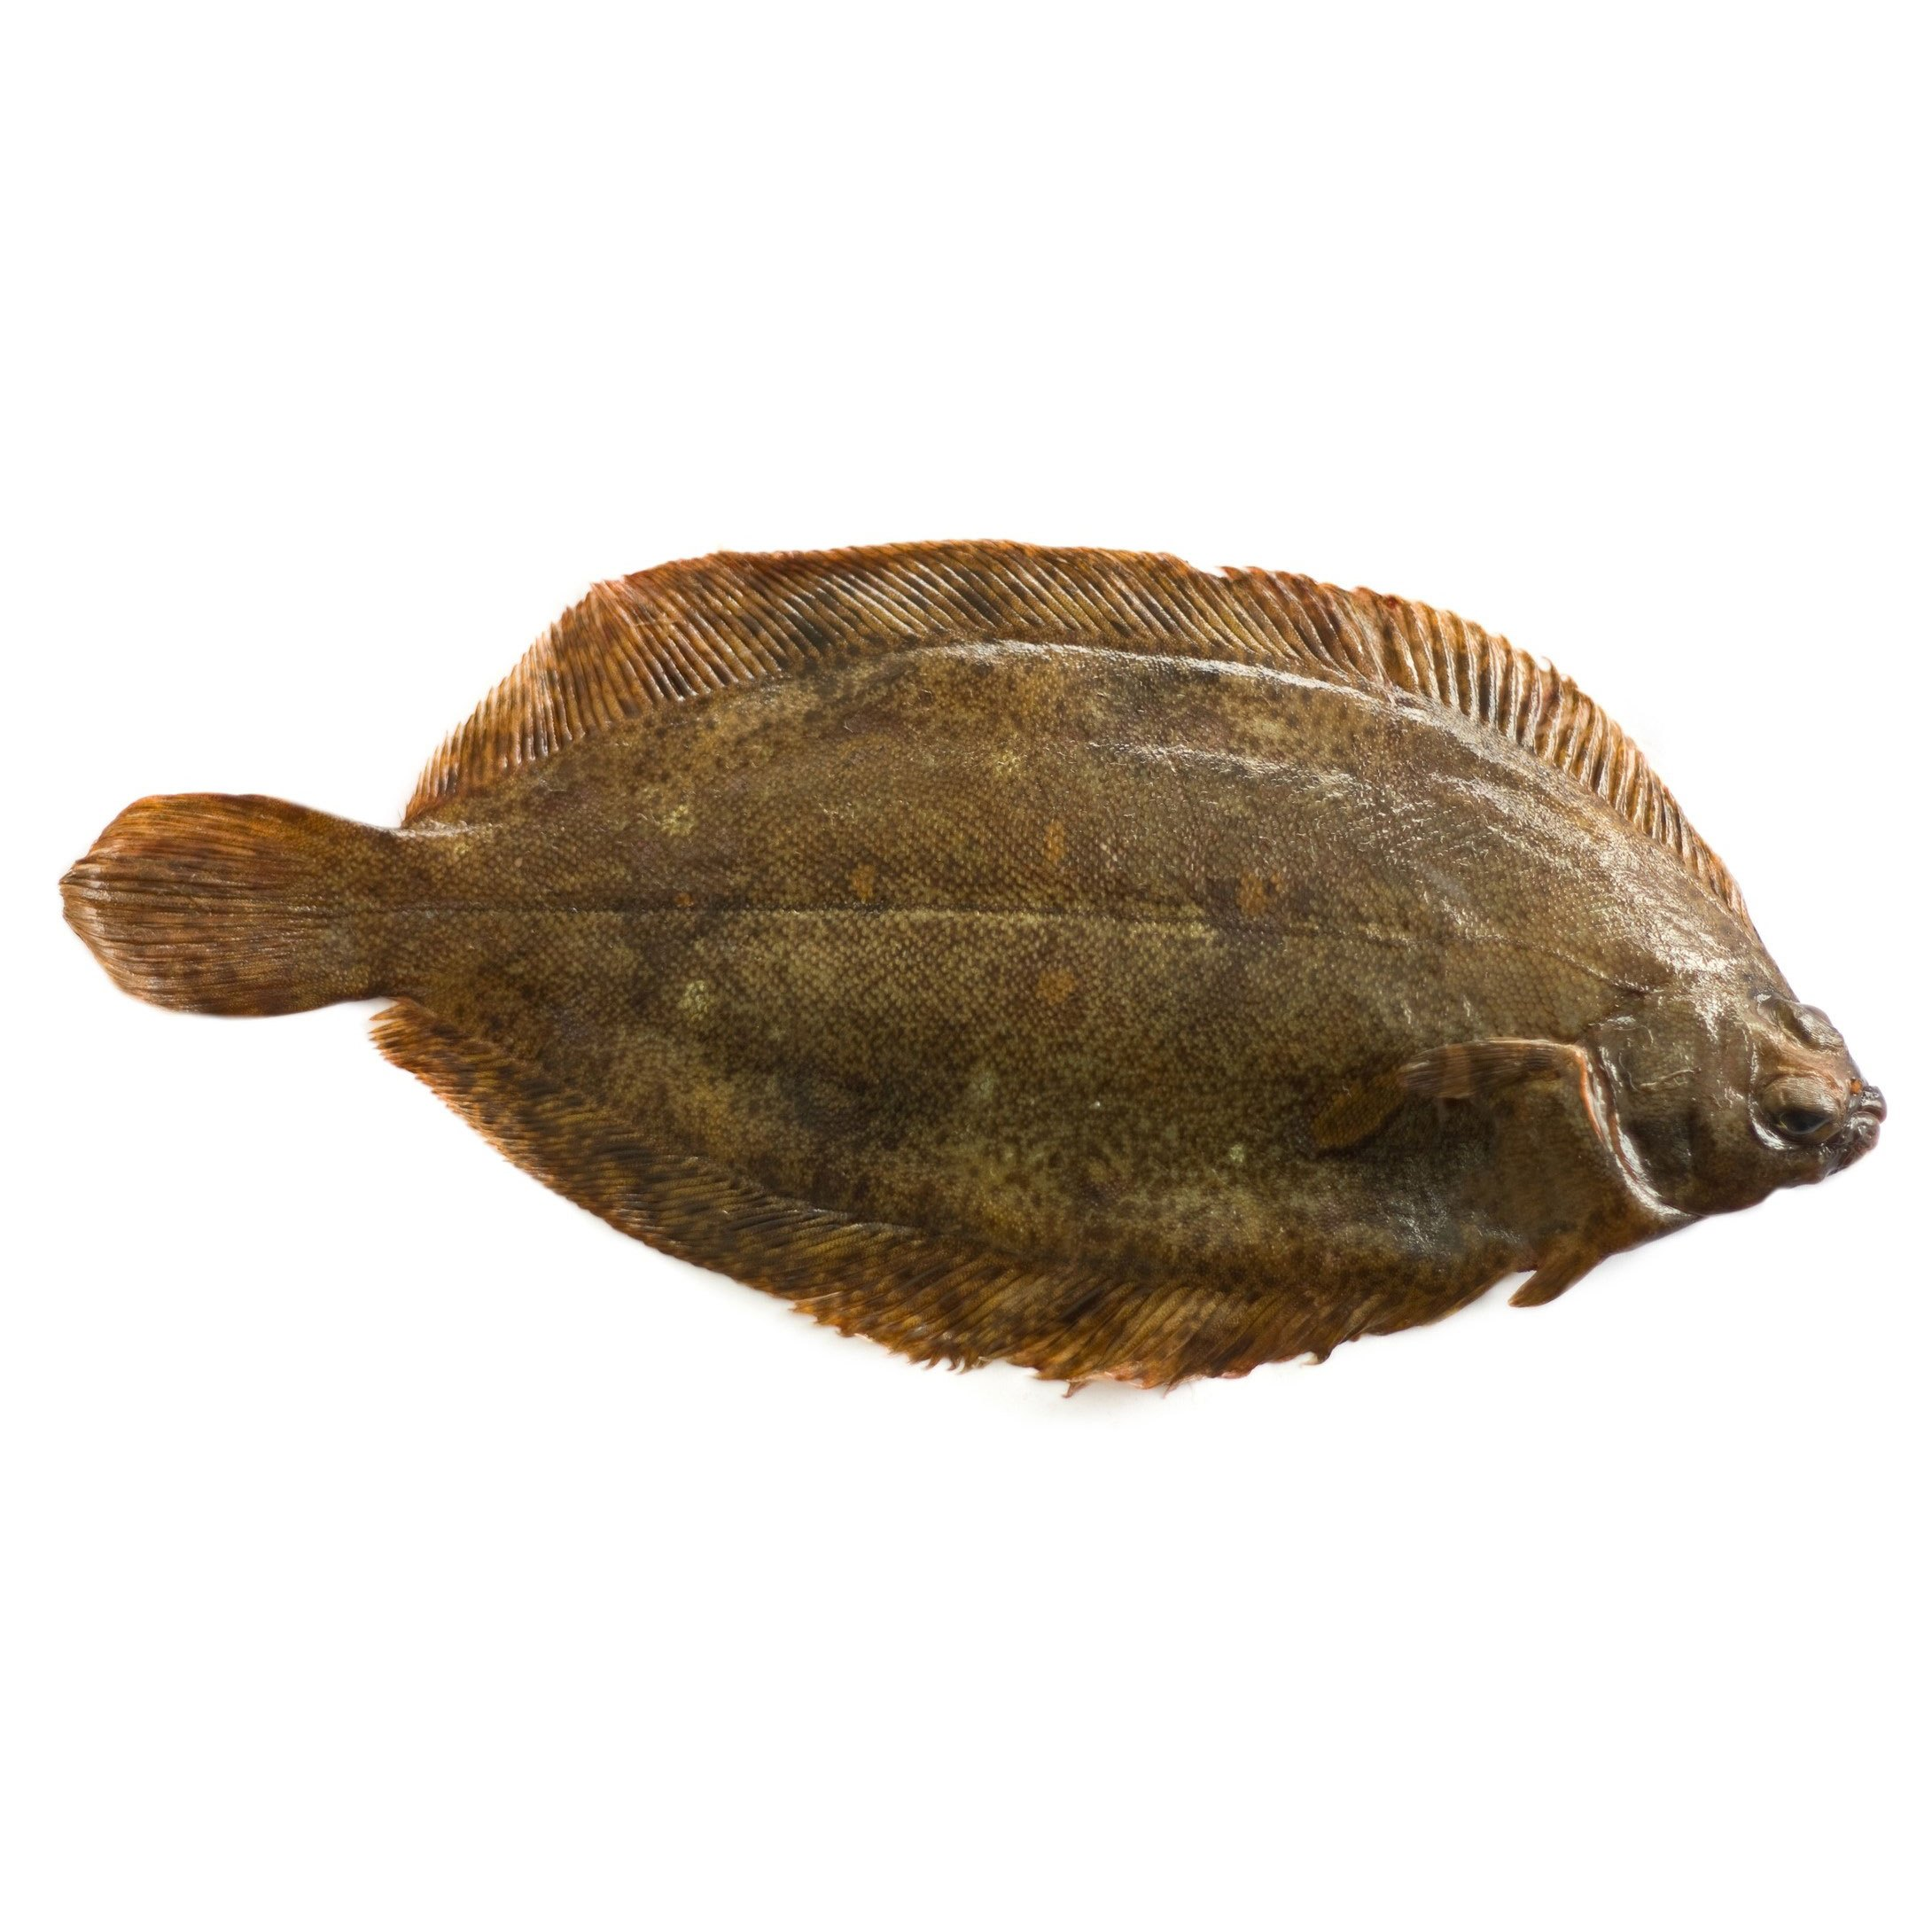 WHITE SOLE/ WITCHES    Format:  Fresh   Size Grade:  0-500g | 500g+